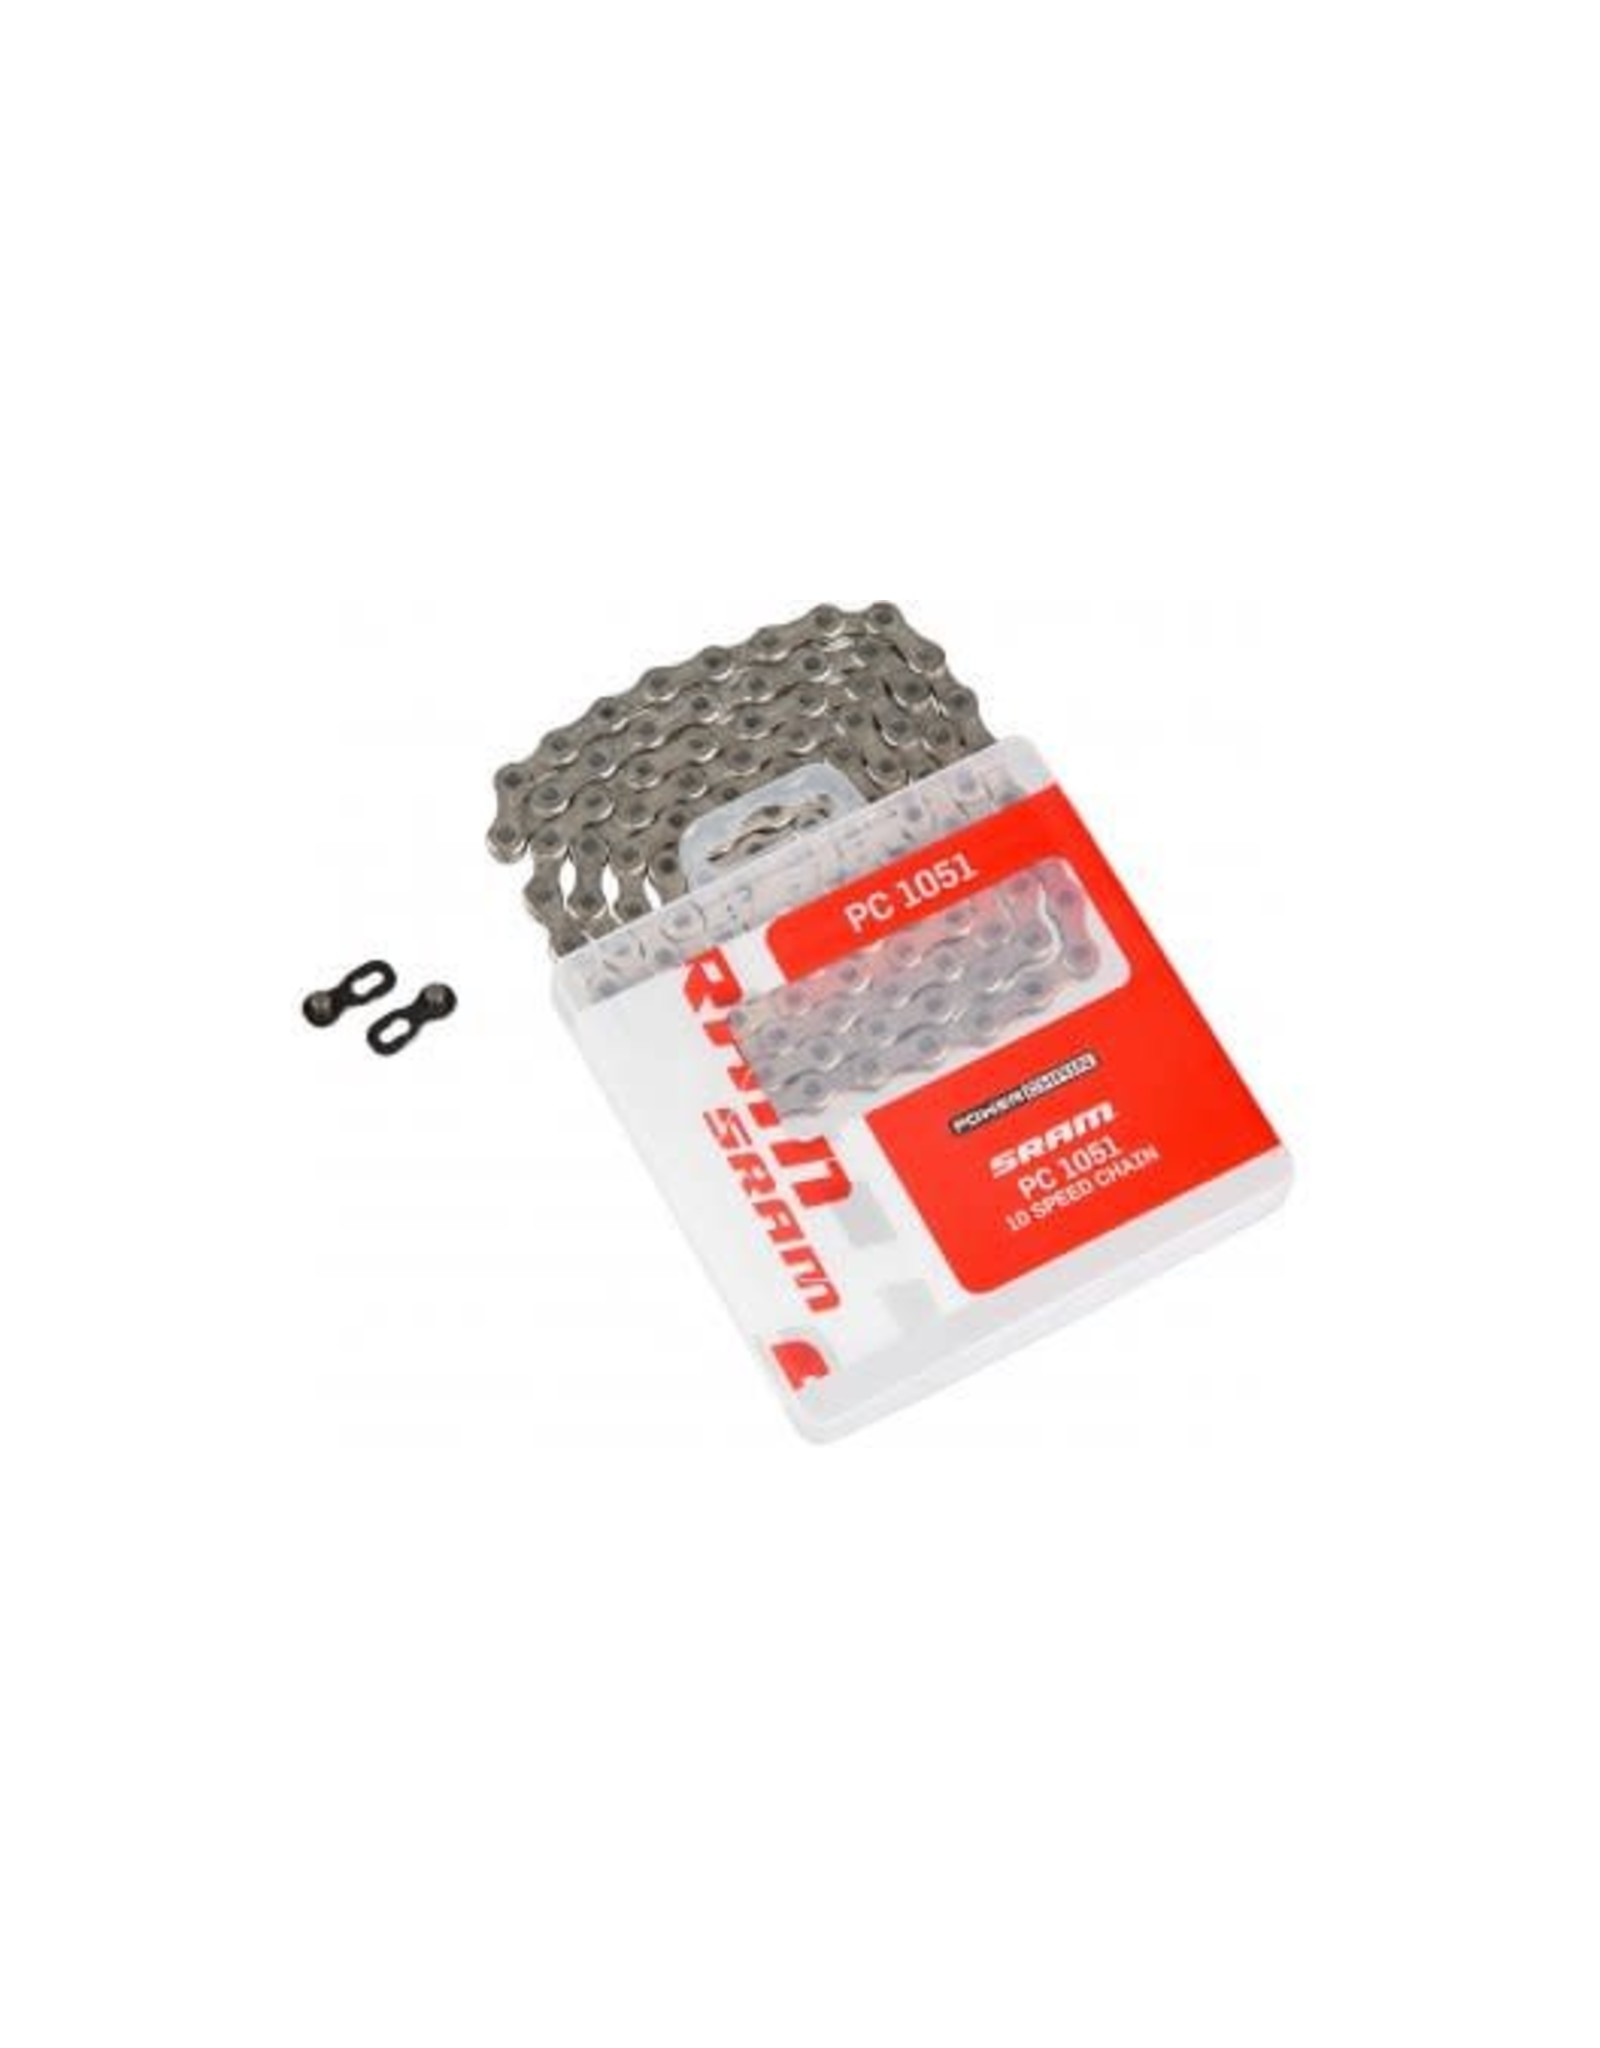 SRAM Sram Chain 10 sp PC-1051